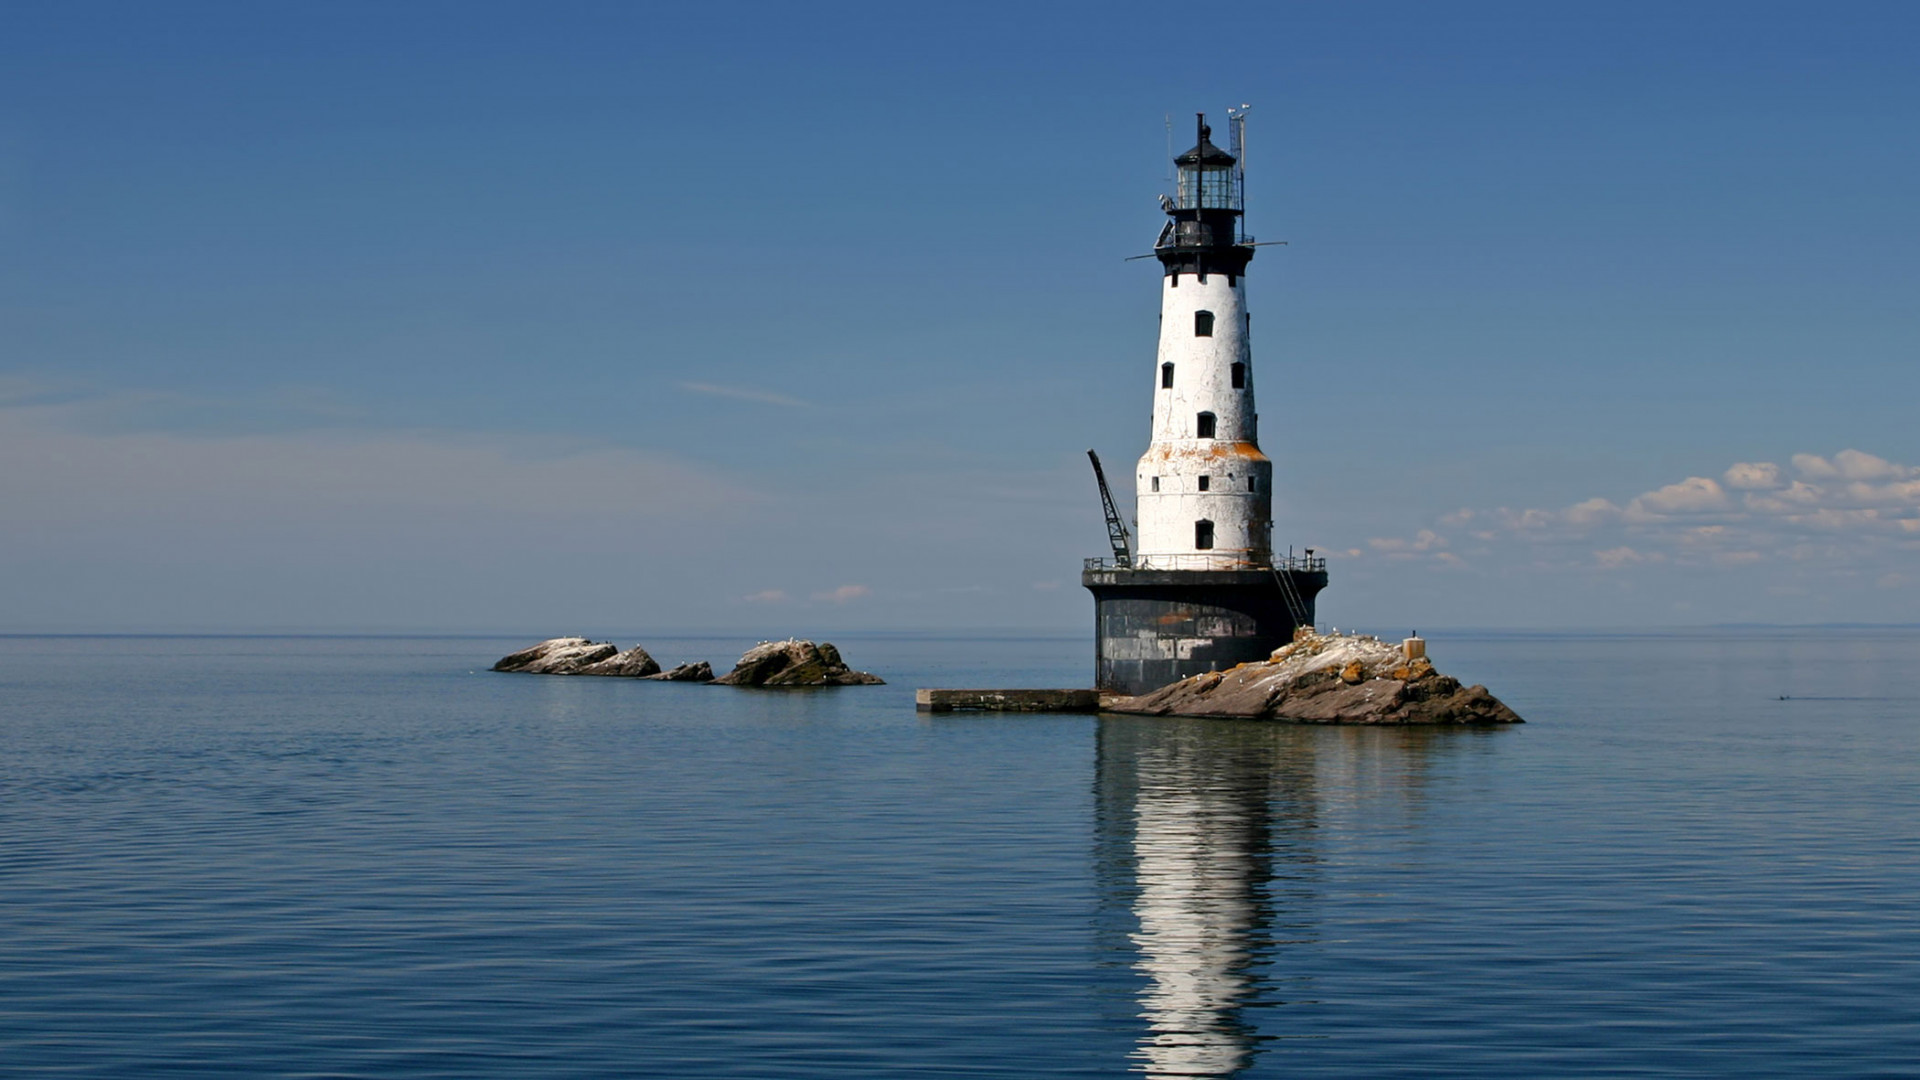 Lighthouse in Isle Royale National Park, USA